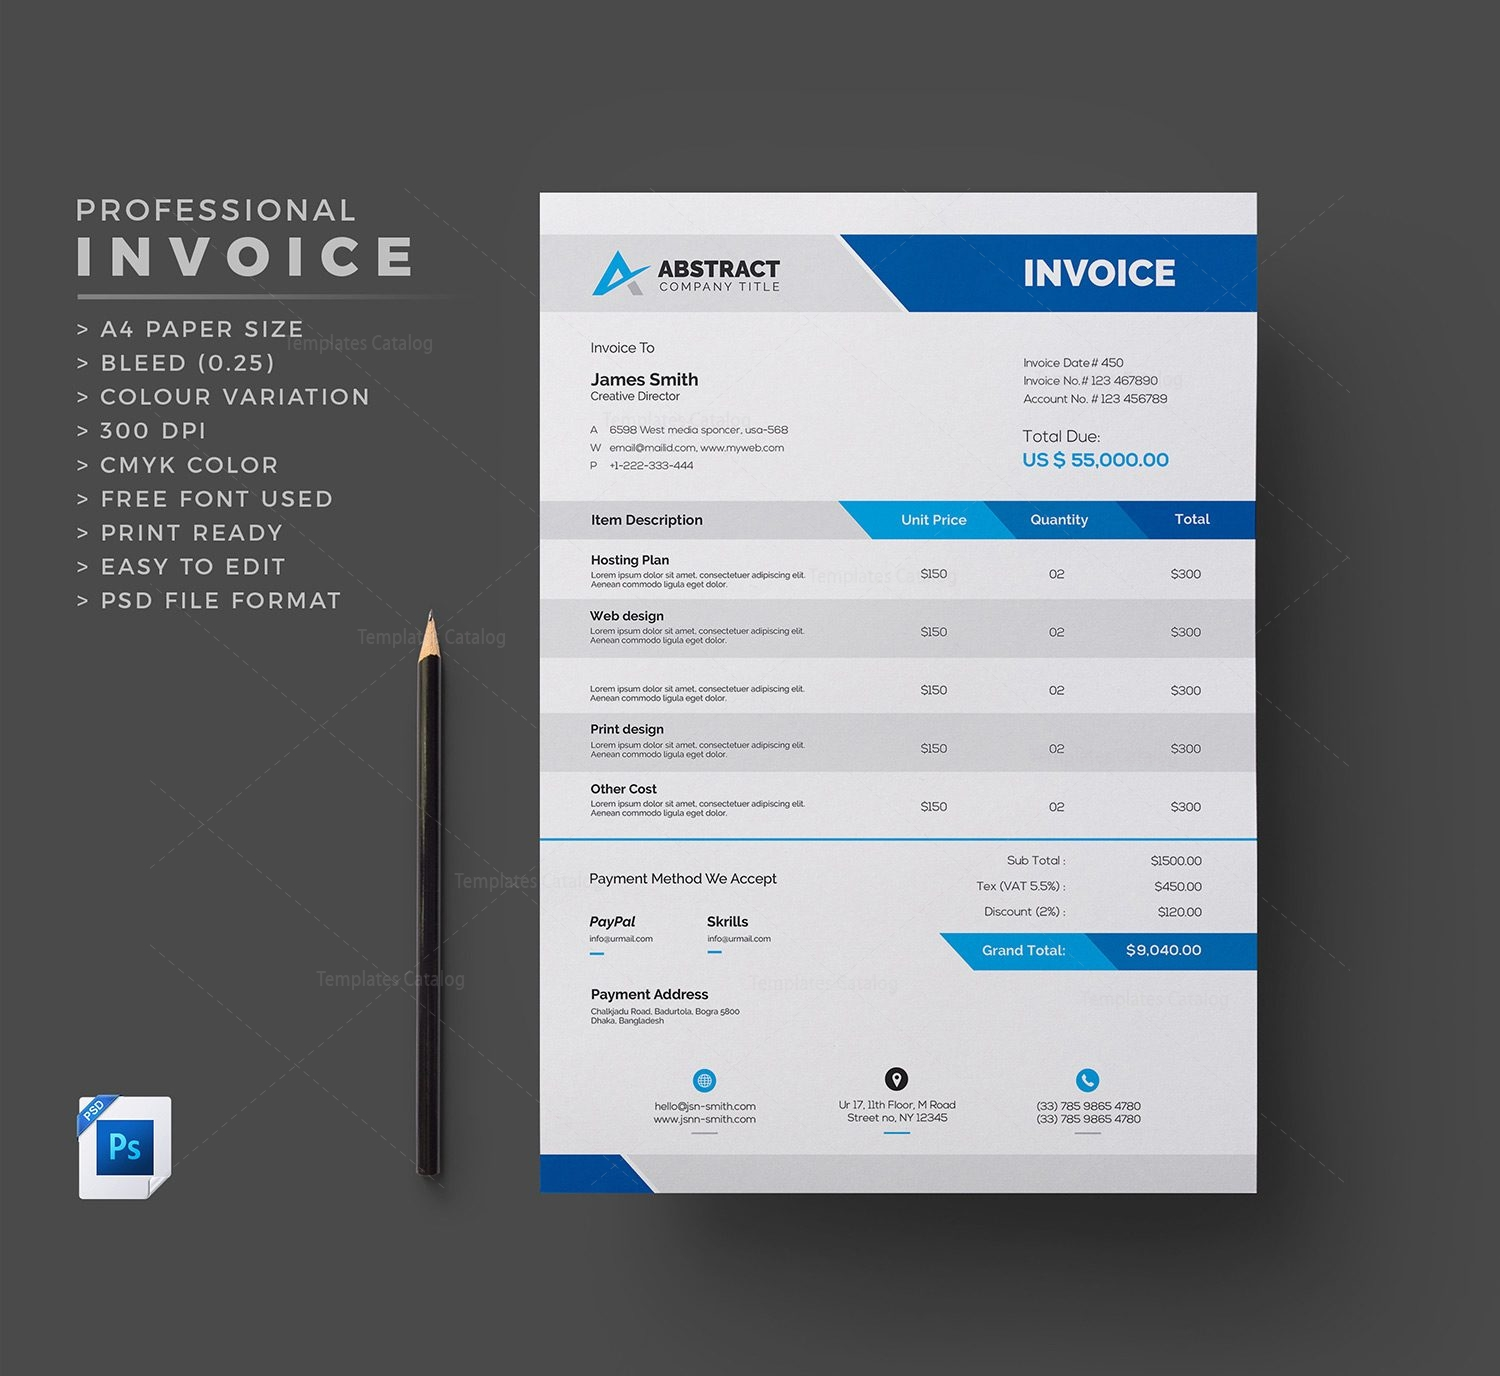 PSD Invoice Template Template Catalog - Psd invoice template